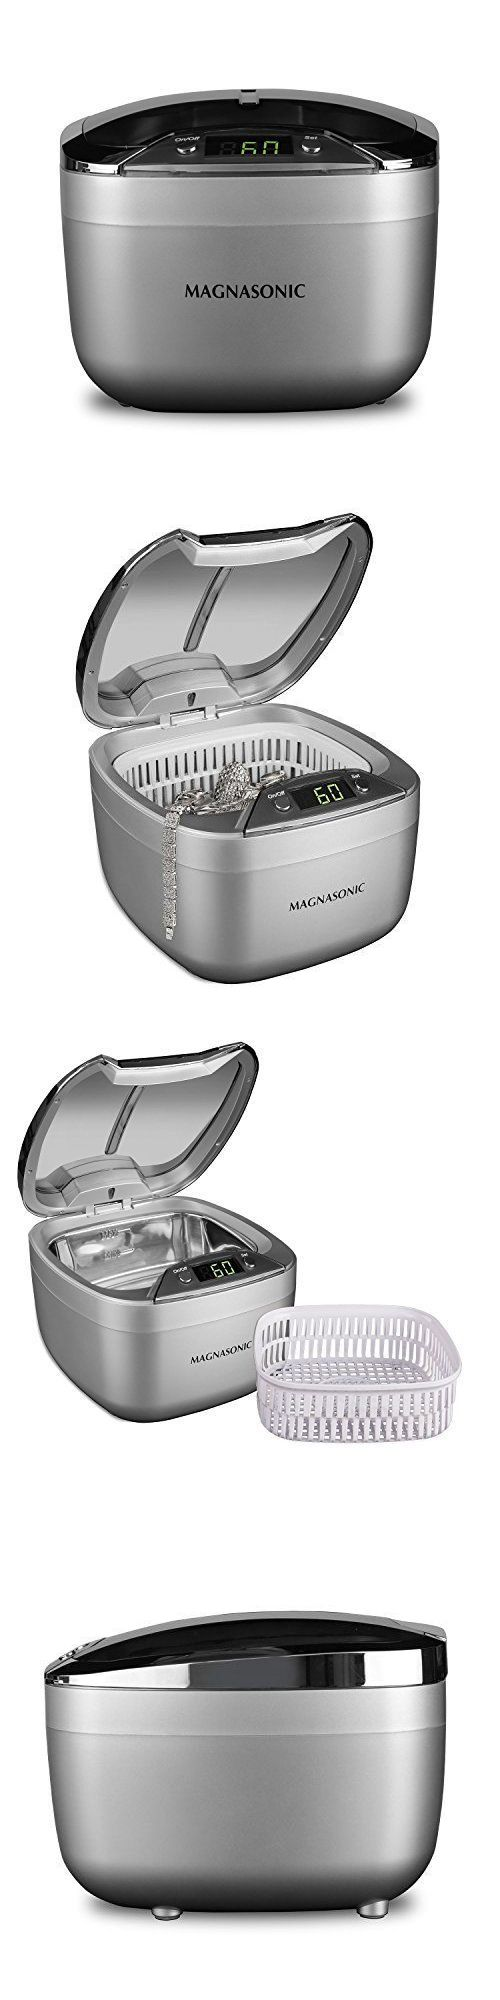 Jewelry Cleaners and Polish 67720: Ultrasonic Jewelry Cleaner Machine Professional Cleaning Digital Timer Large BUY IT NOW ONLY: $67.5